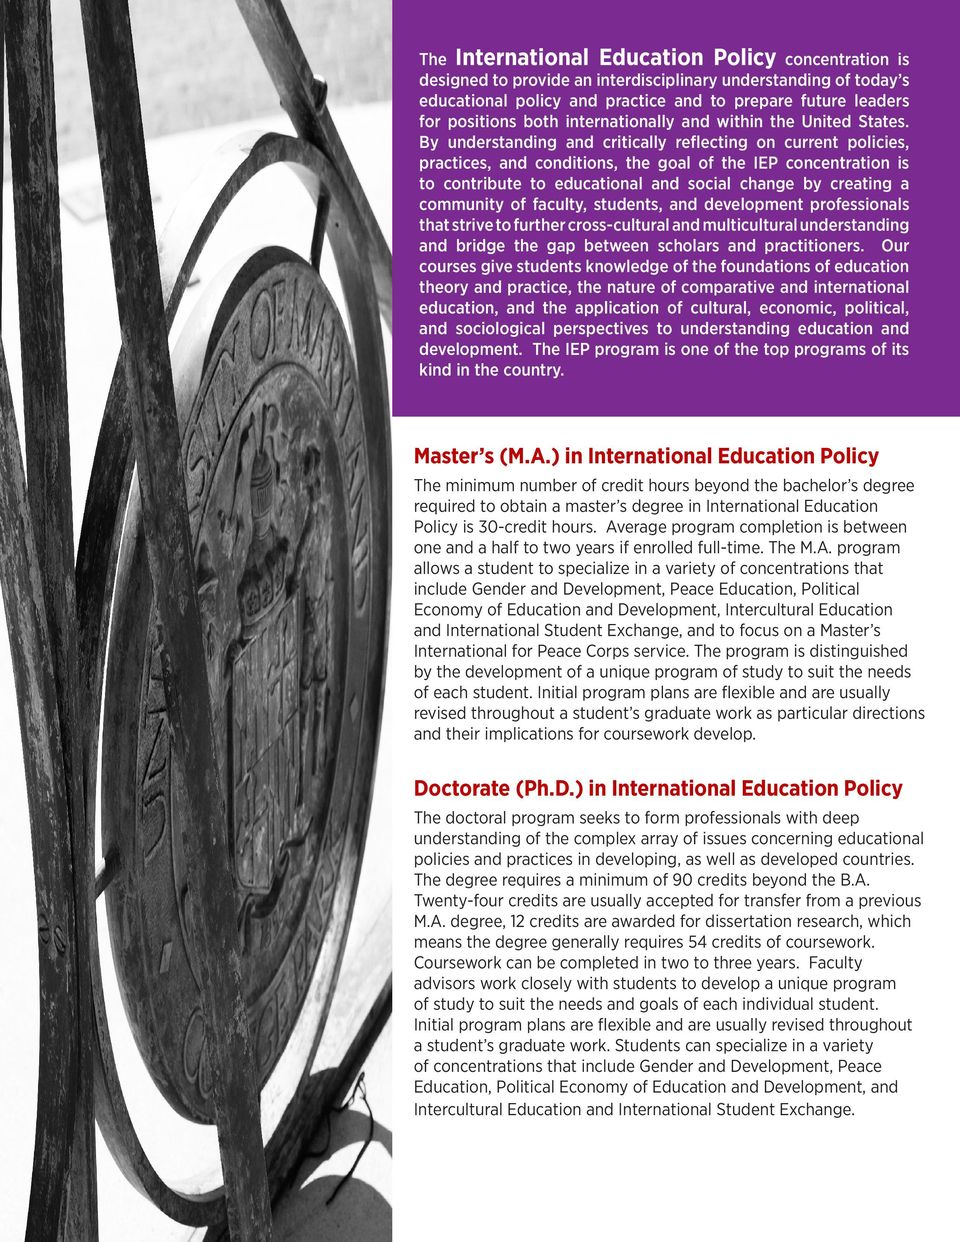 By understanding and critically reflecting on current policies, practices, and conditions, the goal of the IEP concentration is to contribute to educational and social change by creating a community